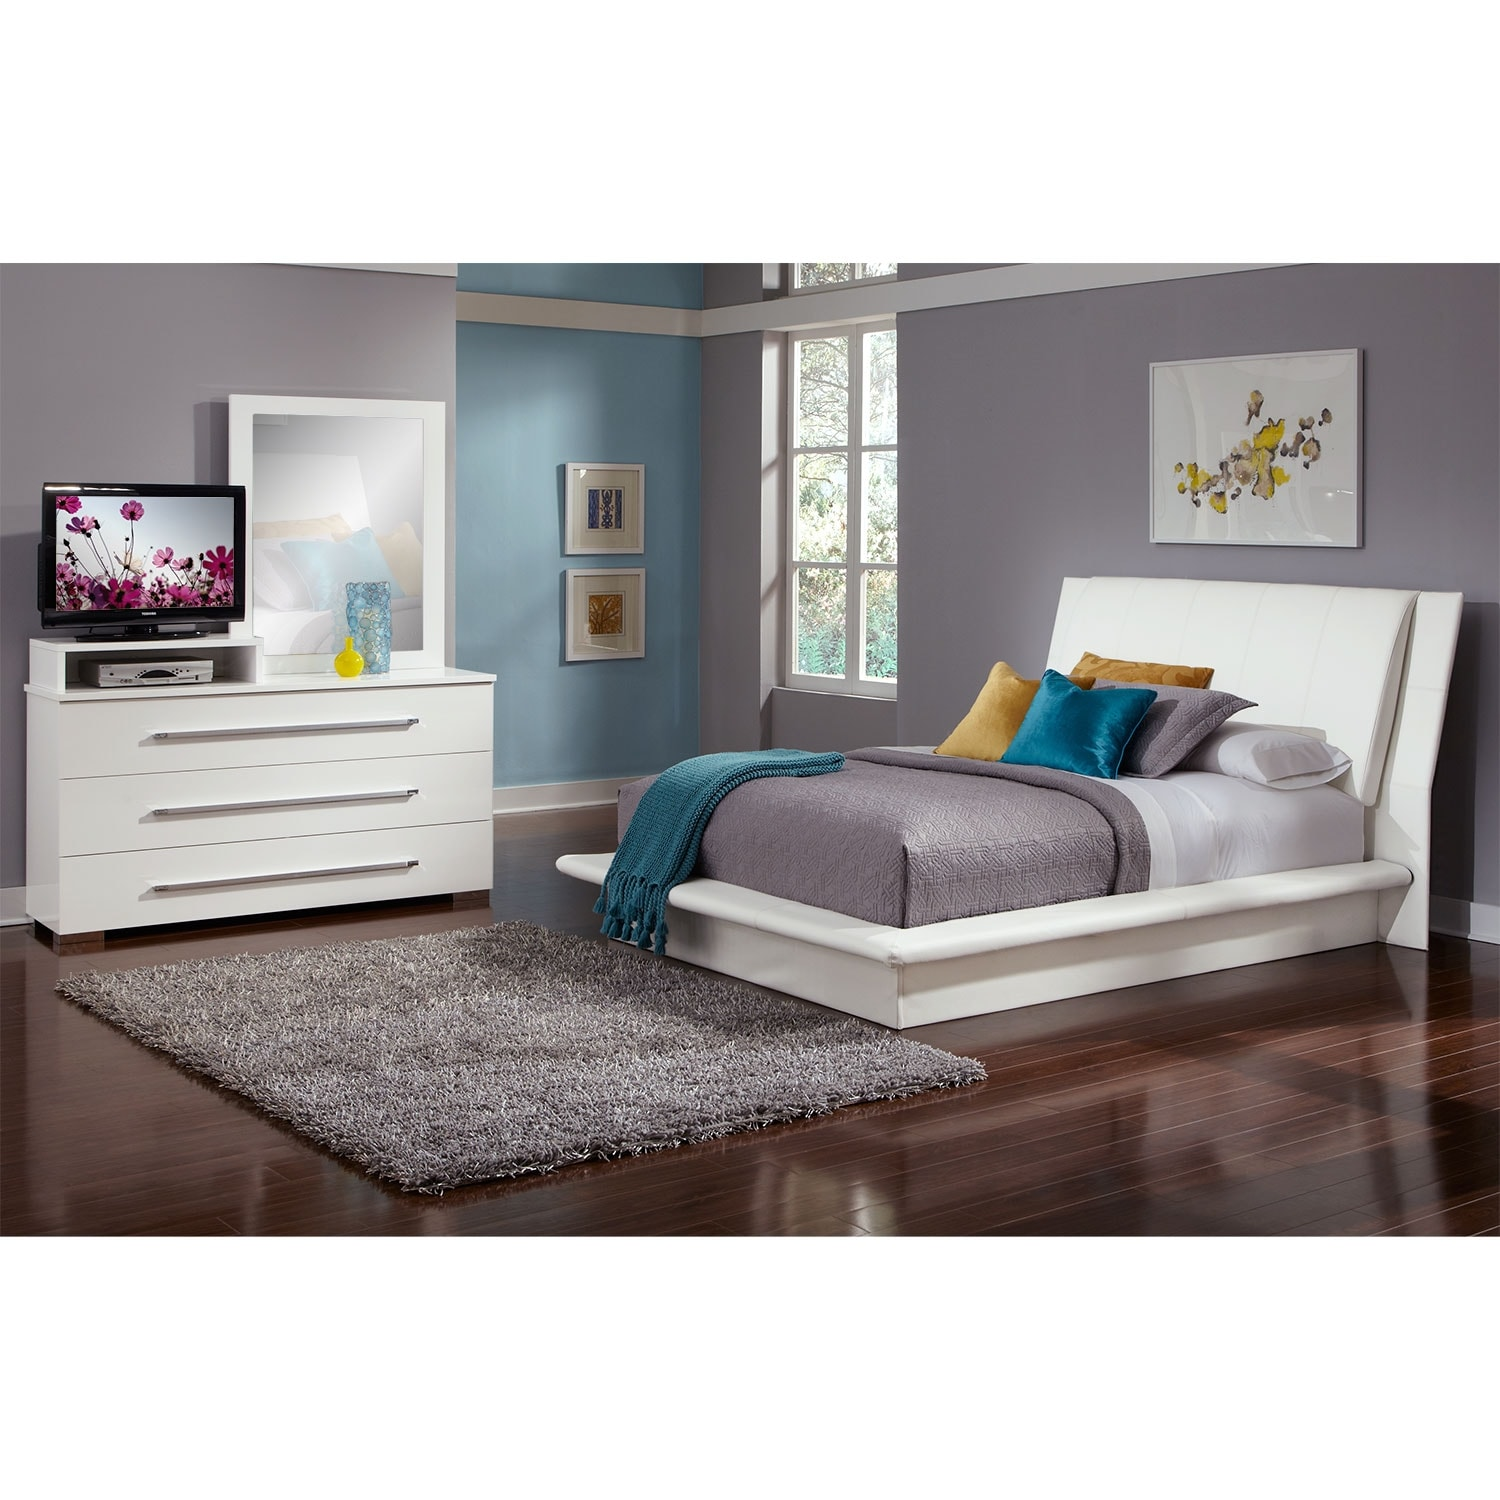 Dimora White 5 Pc. Queen Bedroom